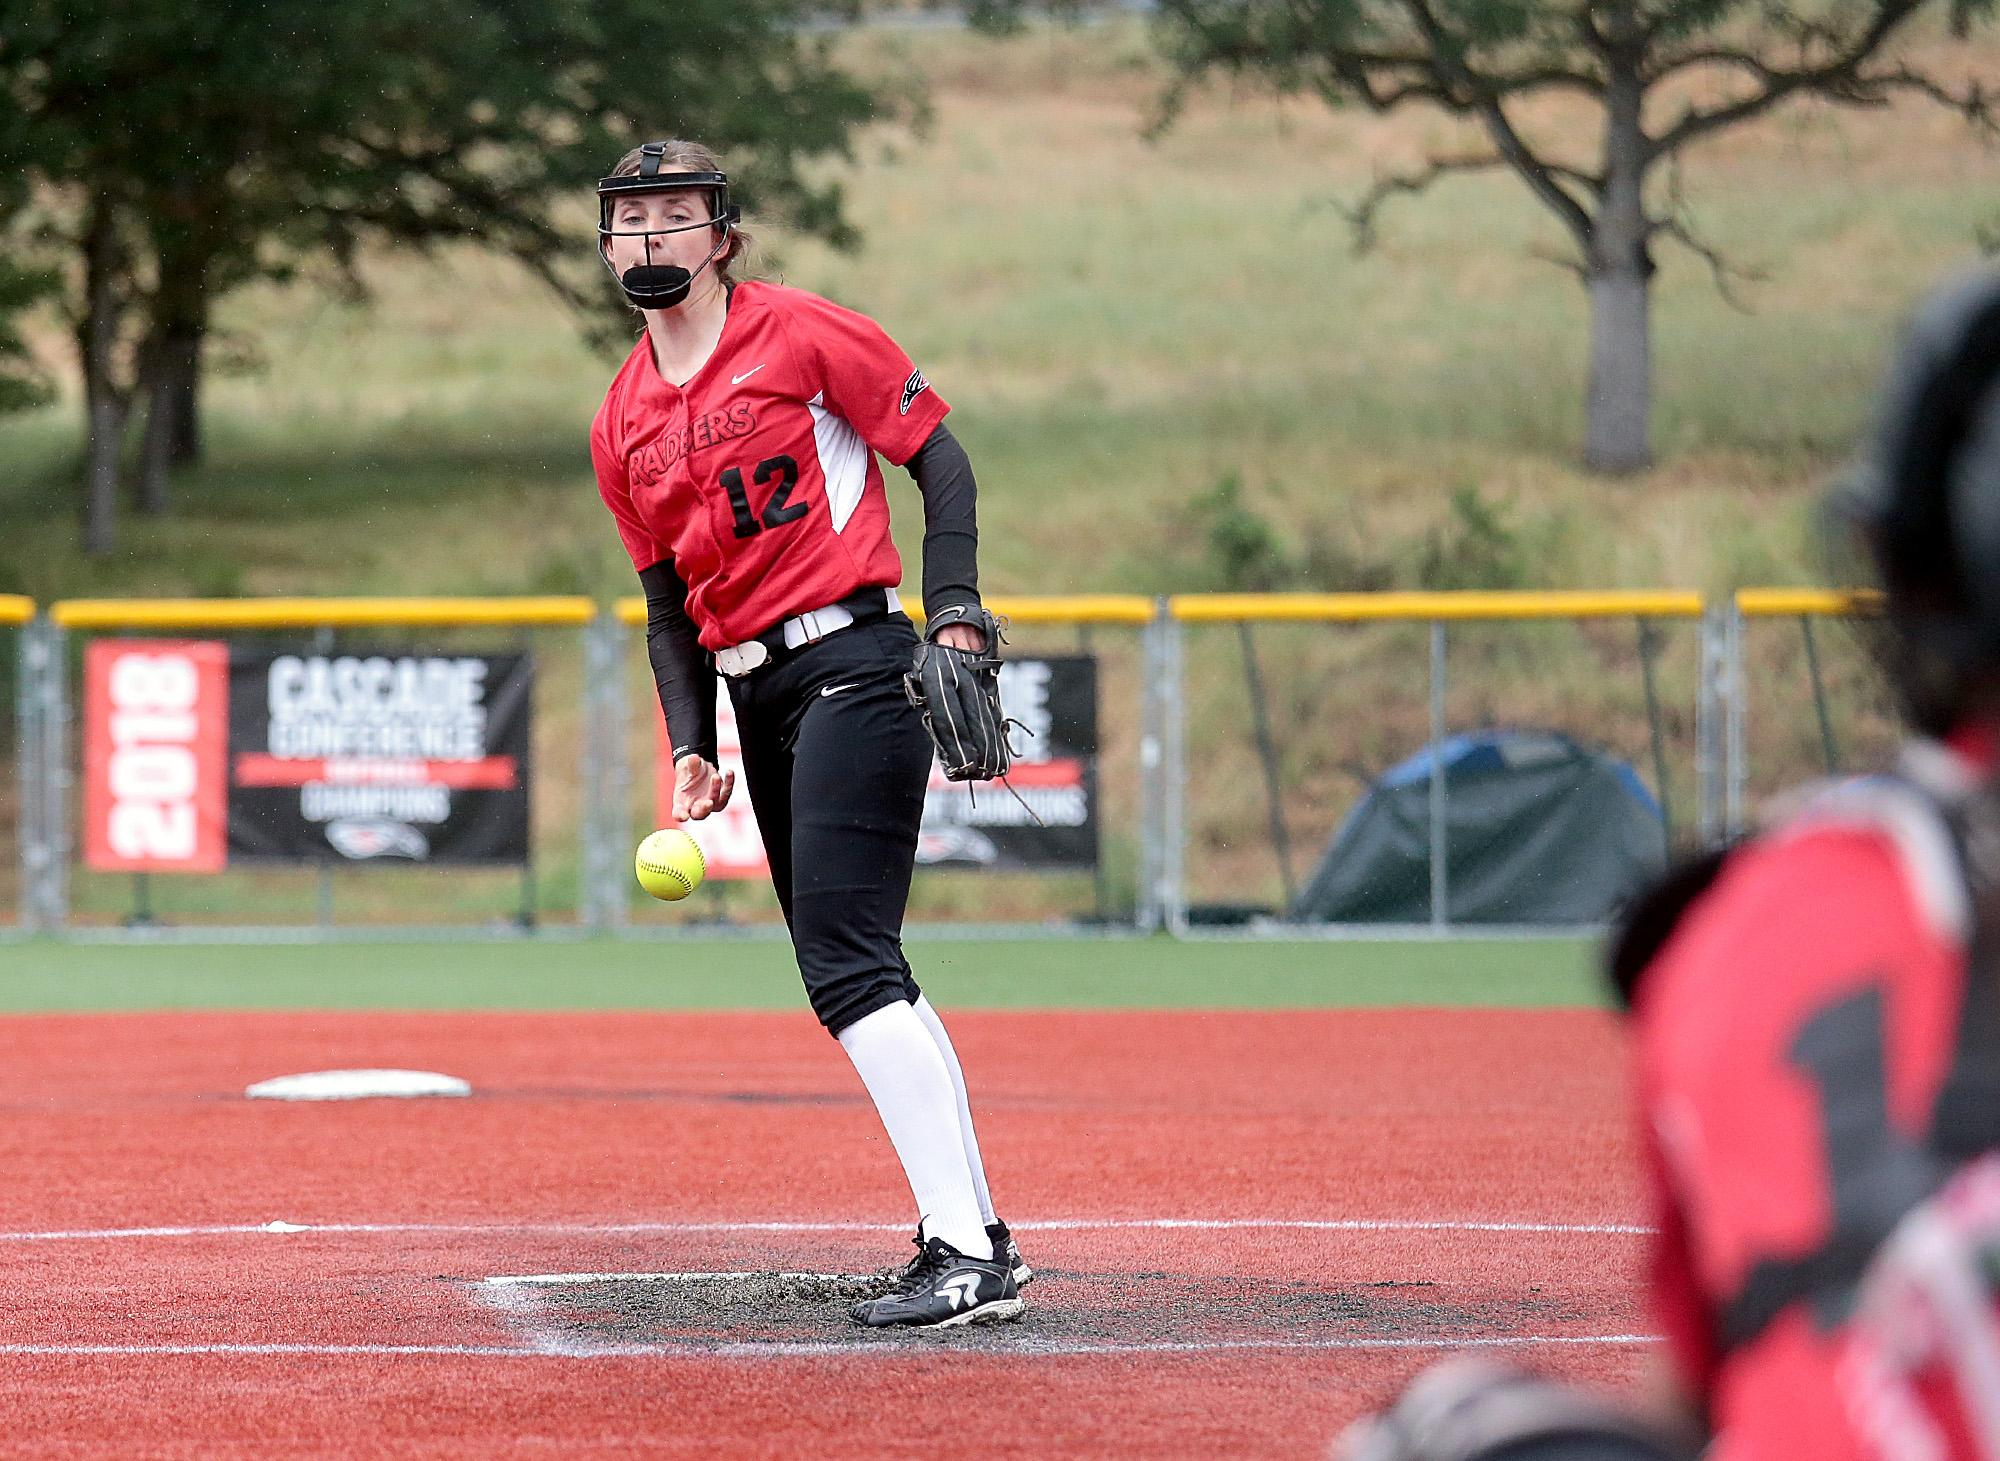 Southern Oregon University freshman Allie Hancock started in the circle for the second game against St. Francis at US Cellular Community Park on Wednesday.[PHOTO BY:  LARRY STAUTH JR]